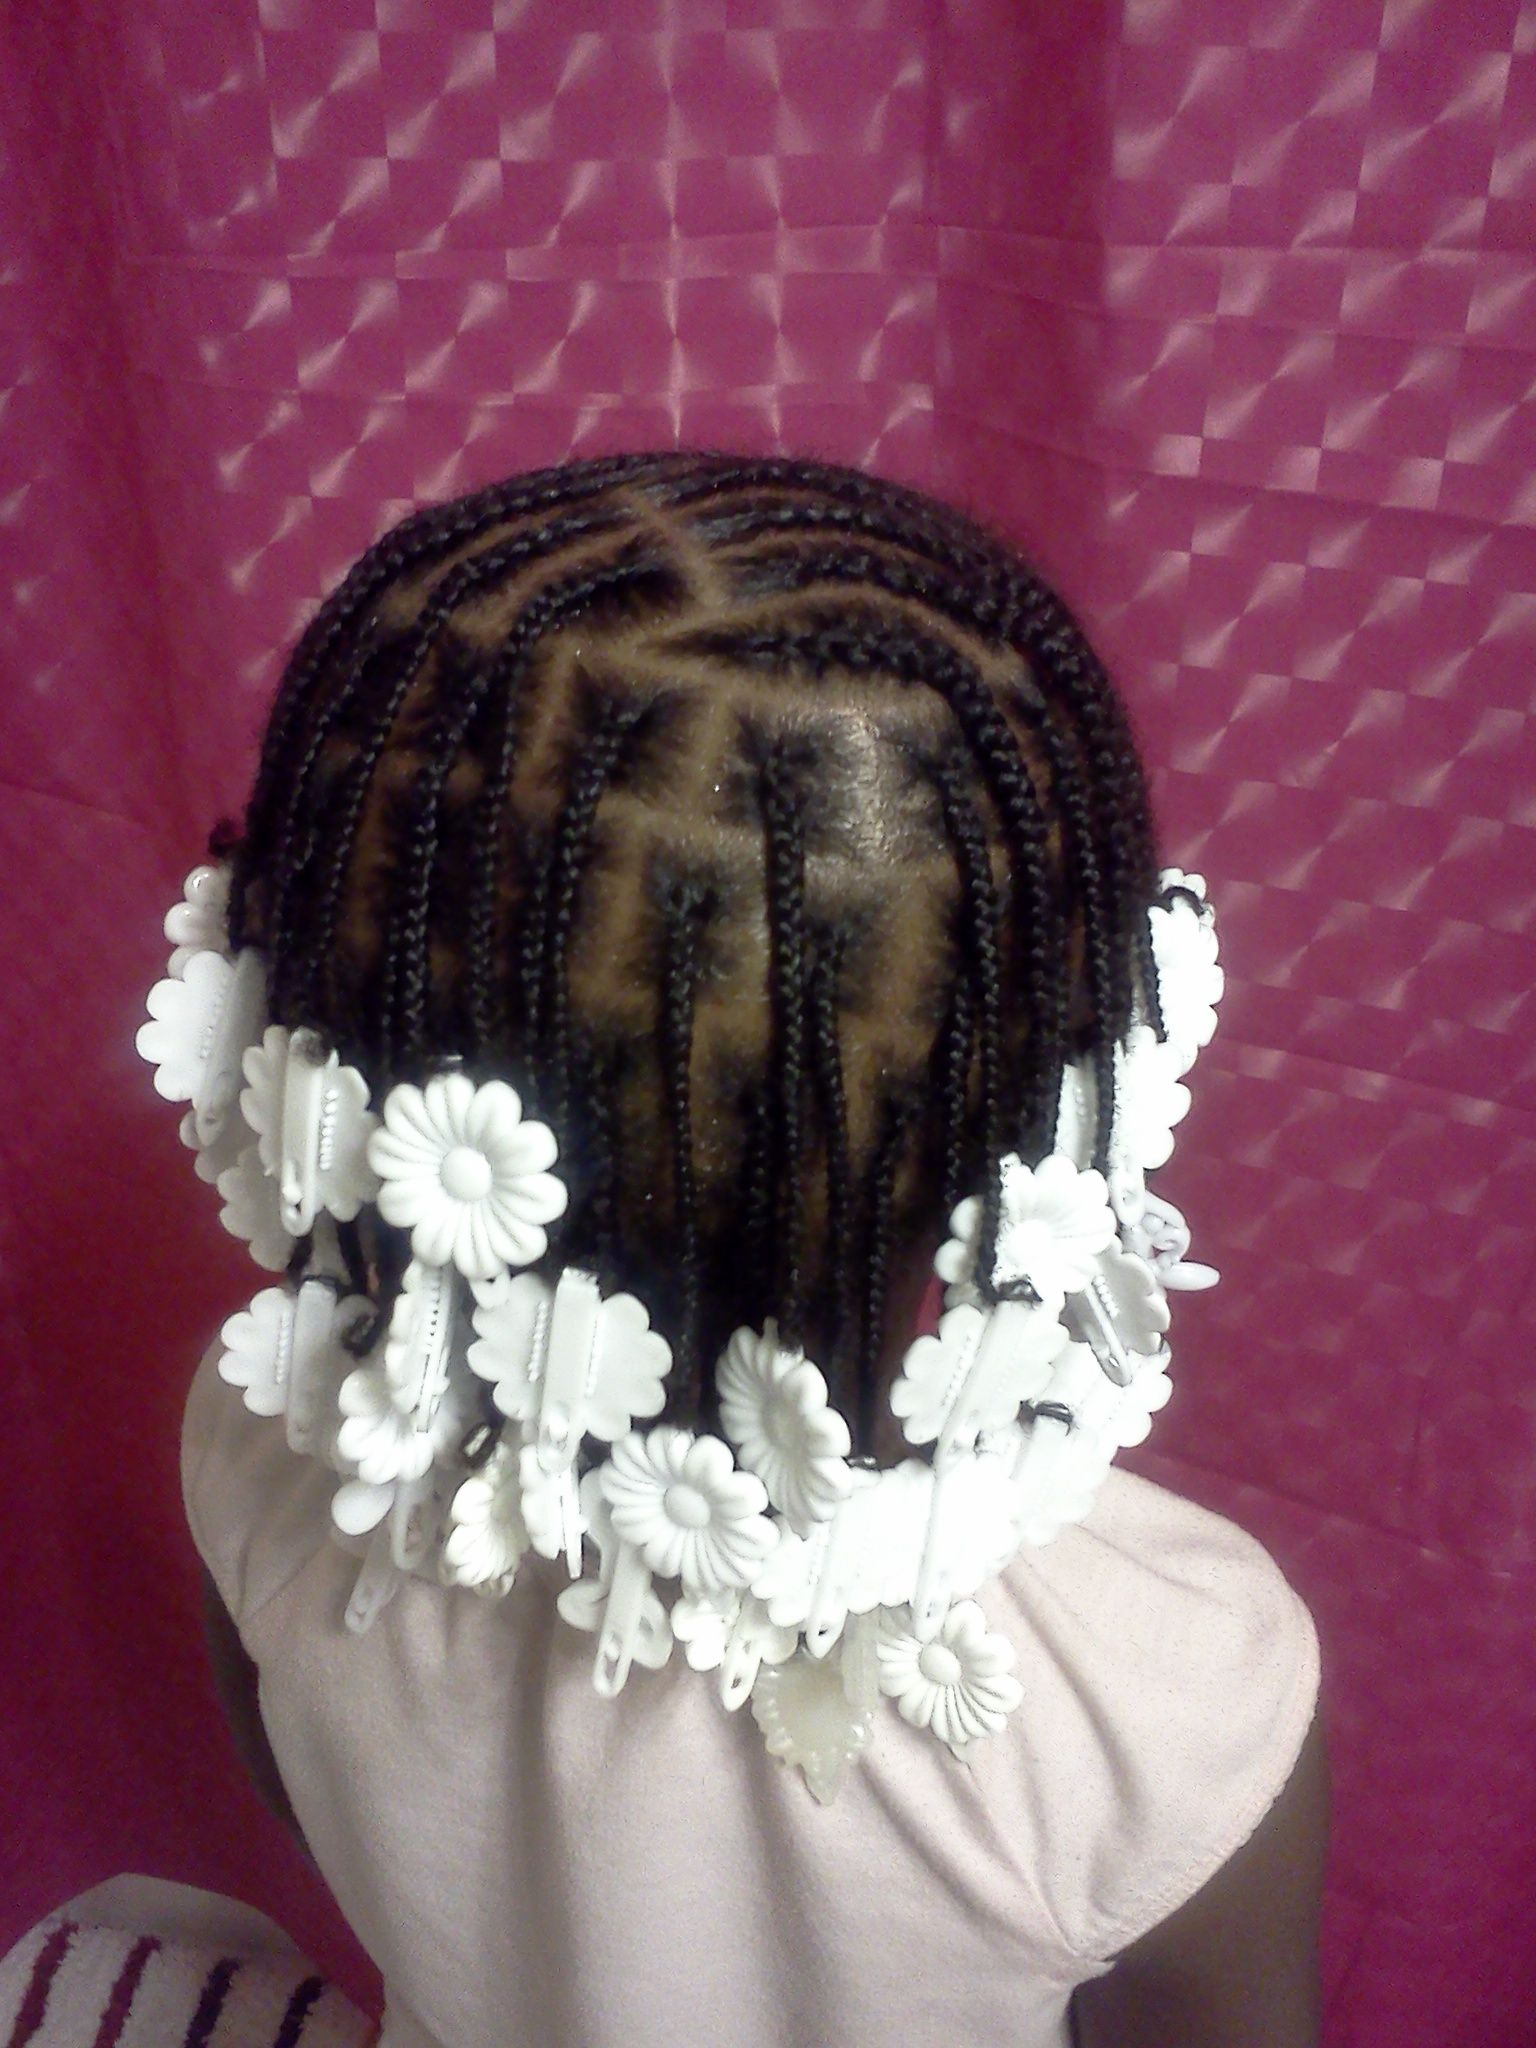 Cute hairstyles for kids hairstyleforblackwomen.net 52